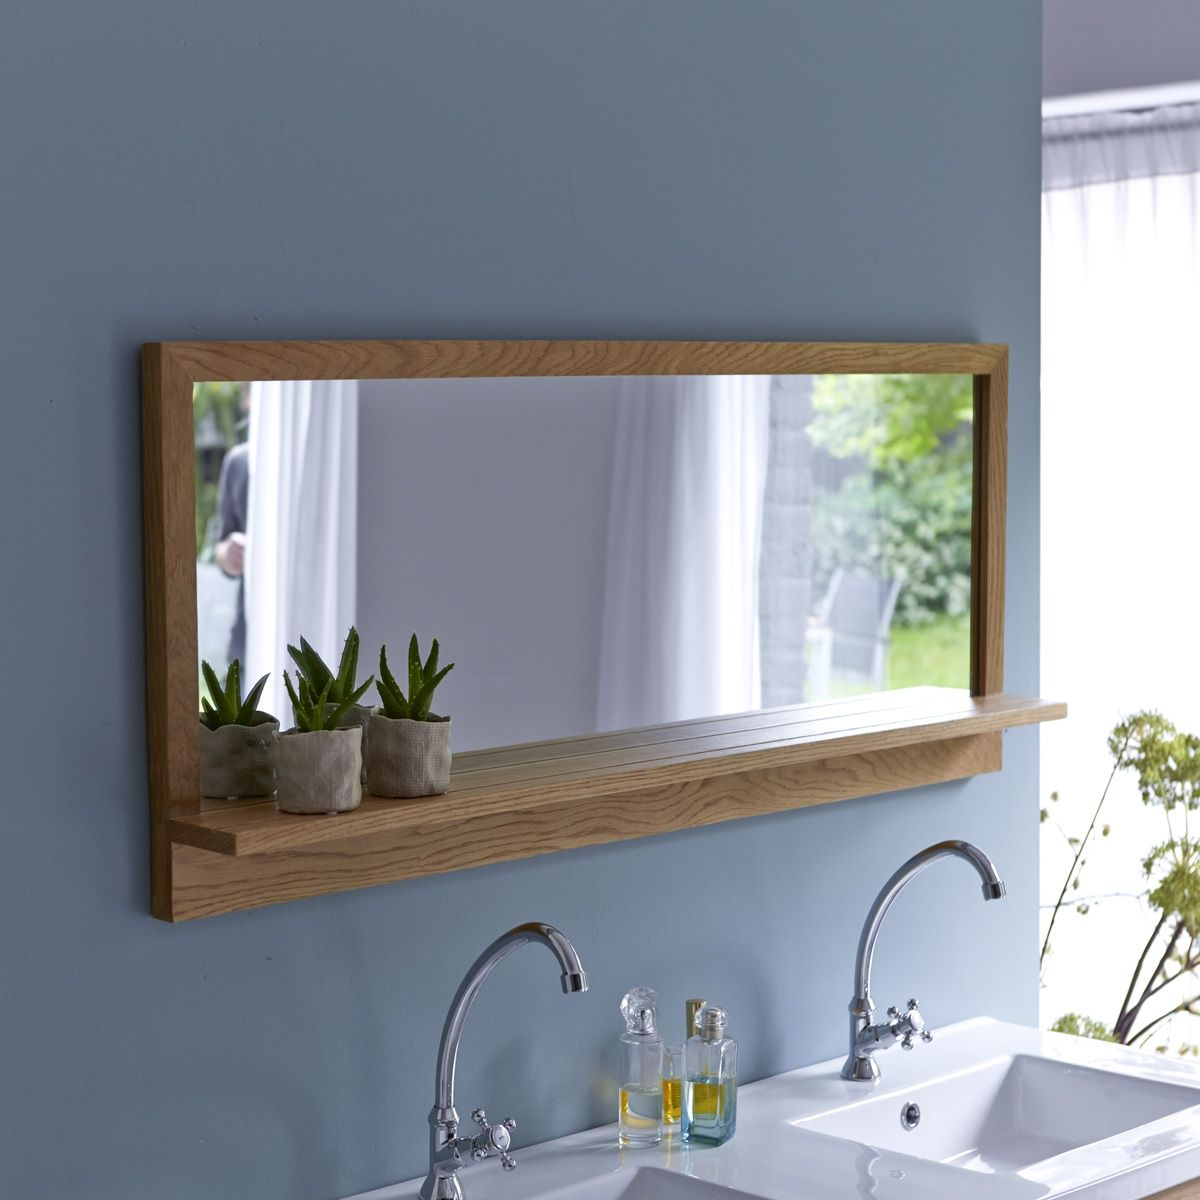 Easy Oak Mirror 120x 50 Cm In 2020 Bathroom Mirrors Diy Wood Mirror Bathroom Bathroom Mirror With Shelf